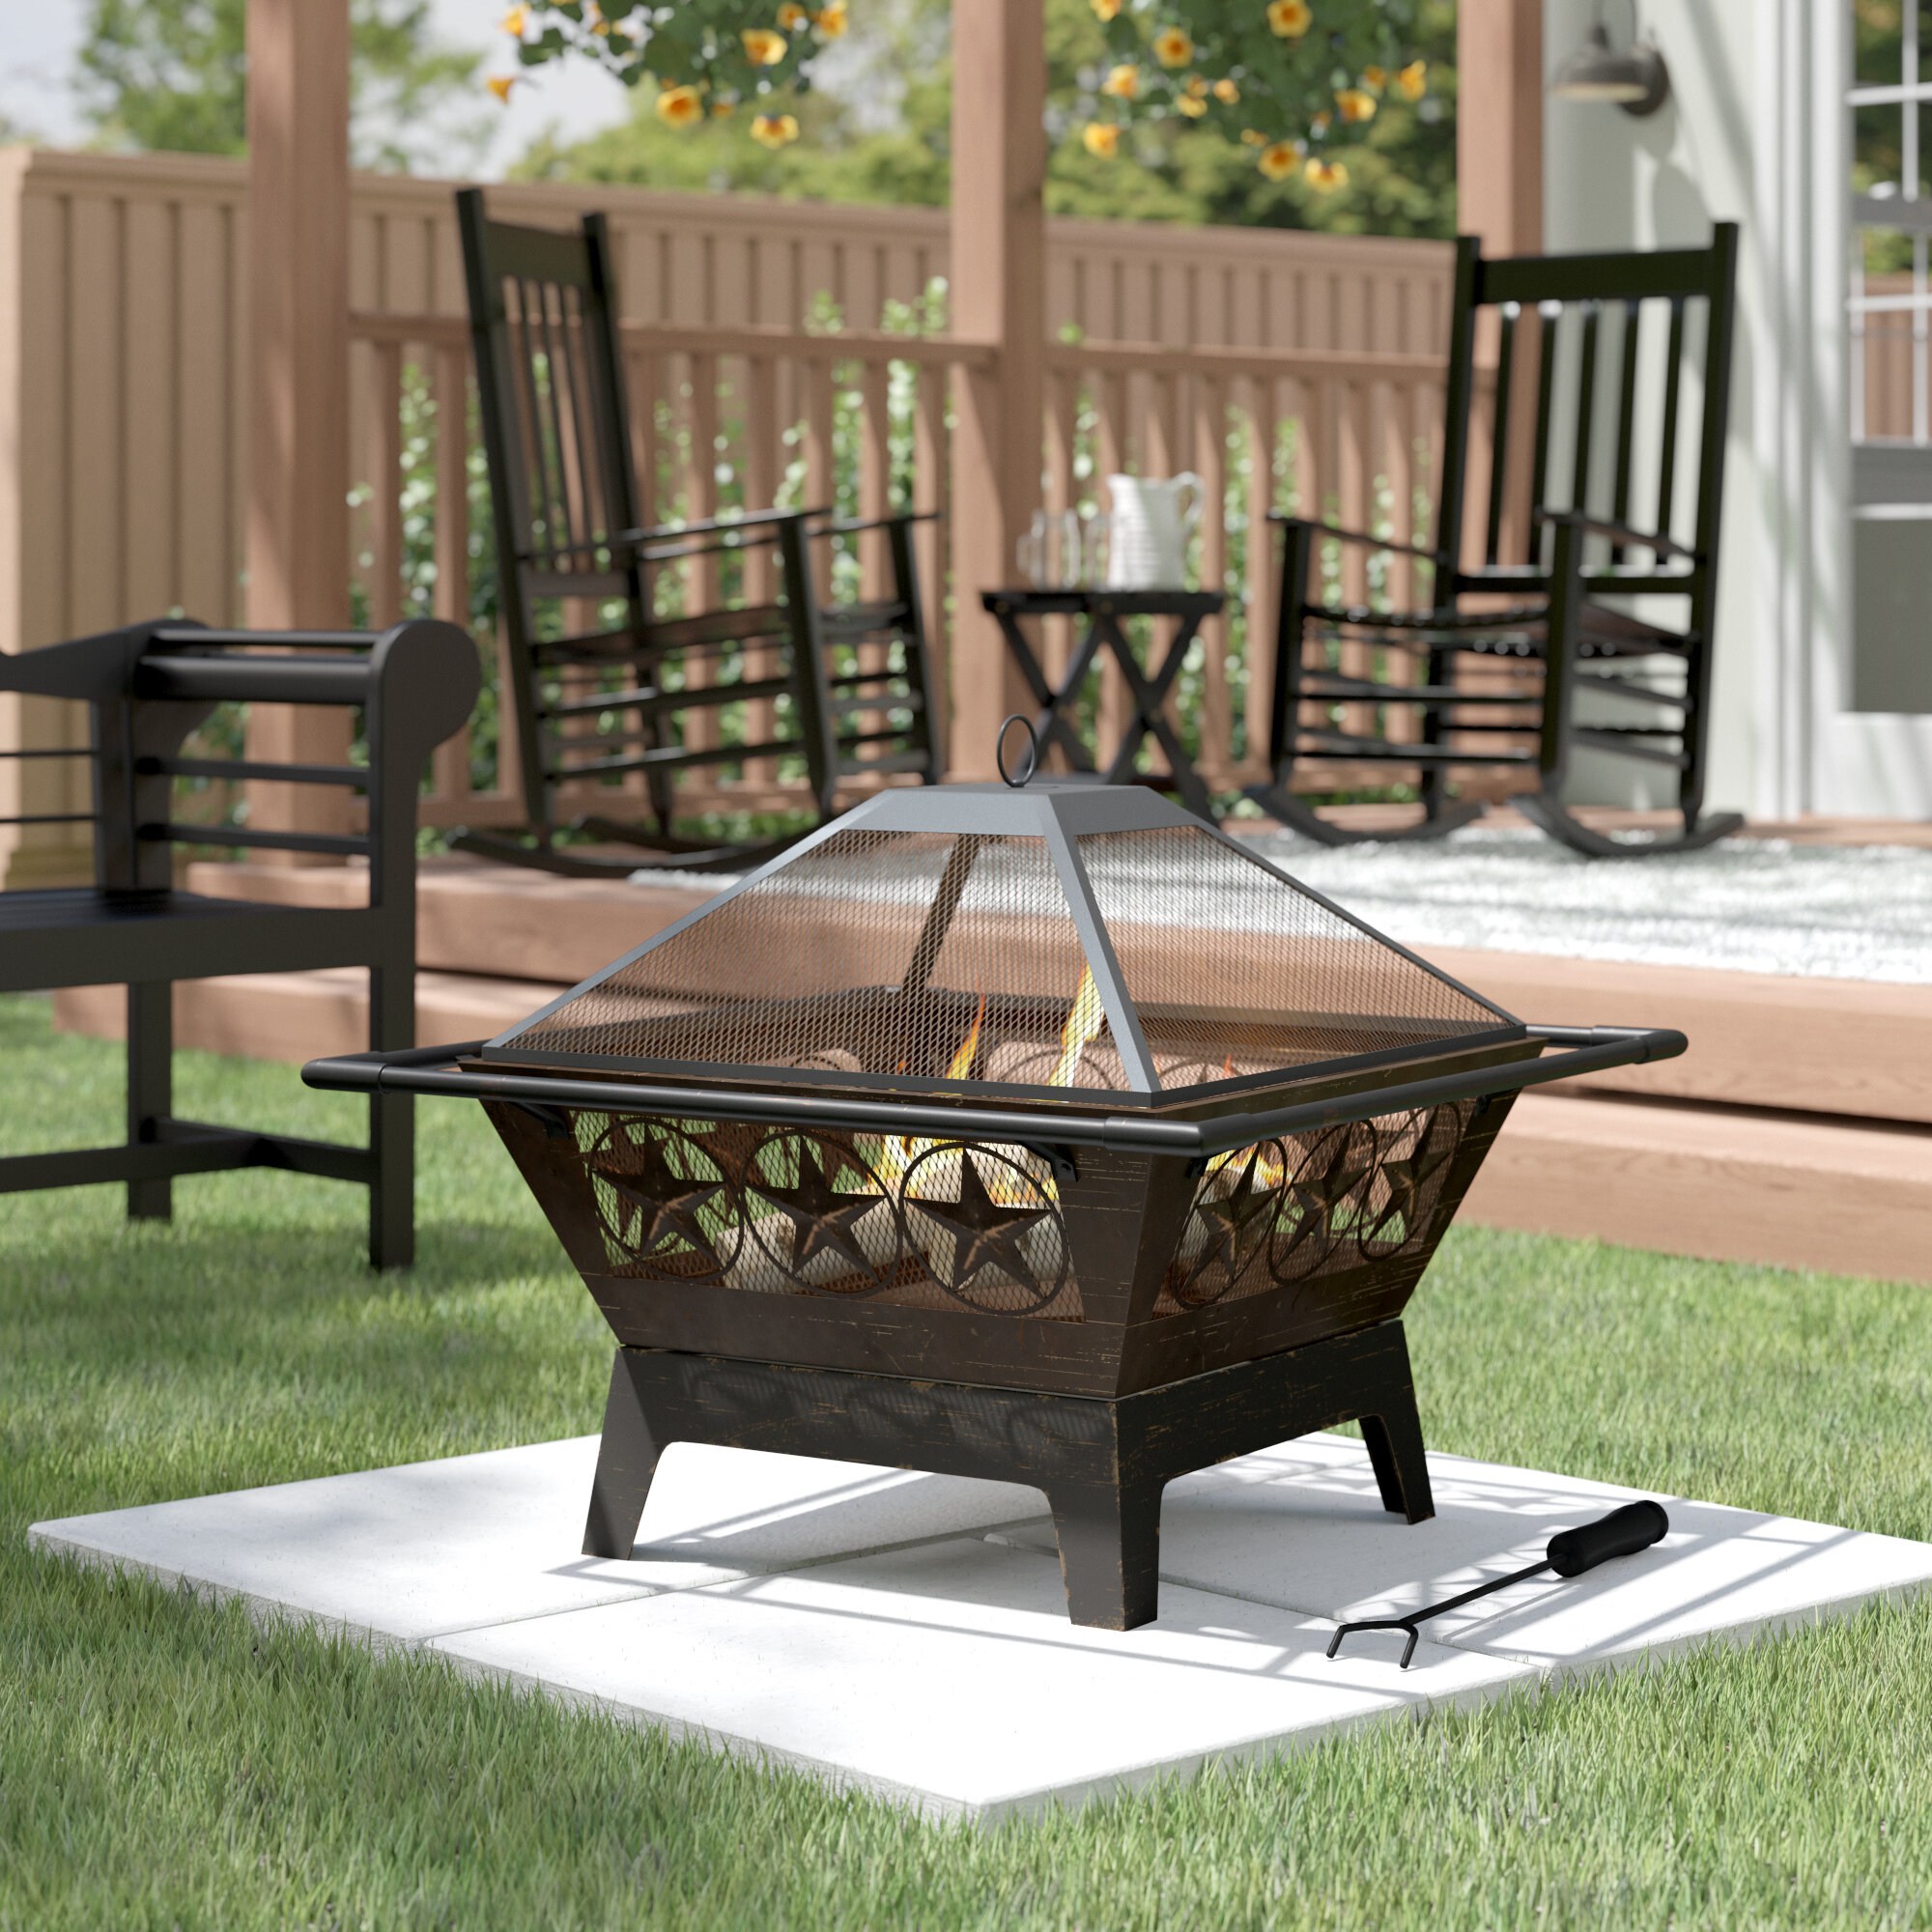 Sol 72 Outdoor Roswita Steel Wood Burning Fire Pit Reviews